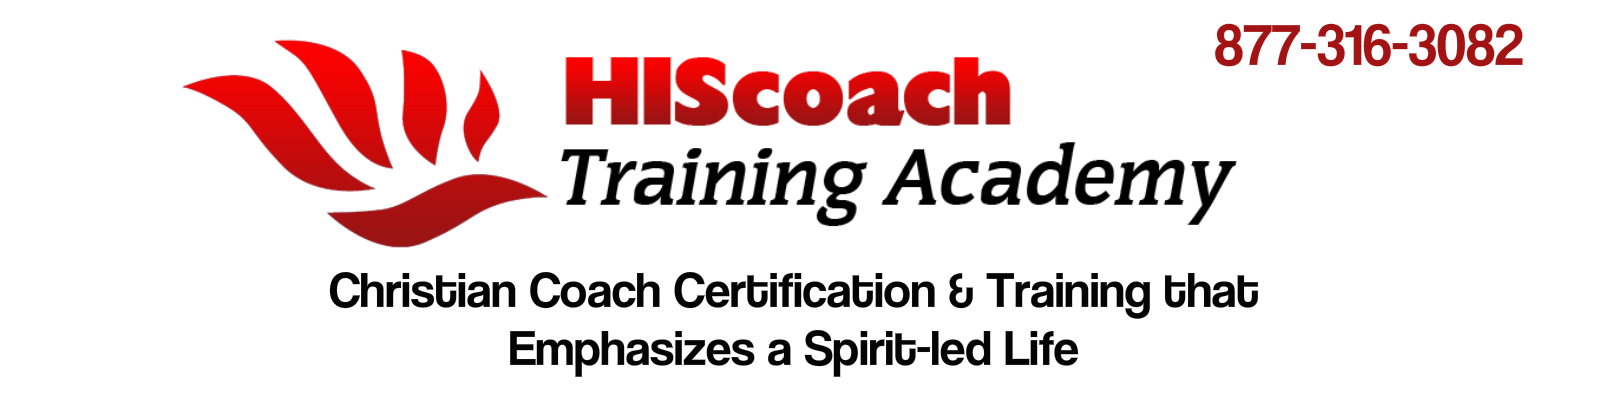 Hiscoach Nanette Christian Life Coach Training That Emphasizes A